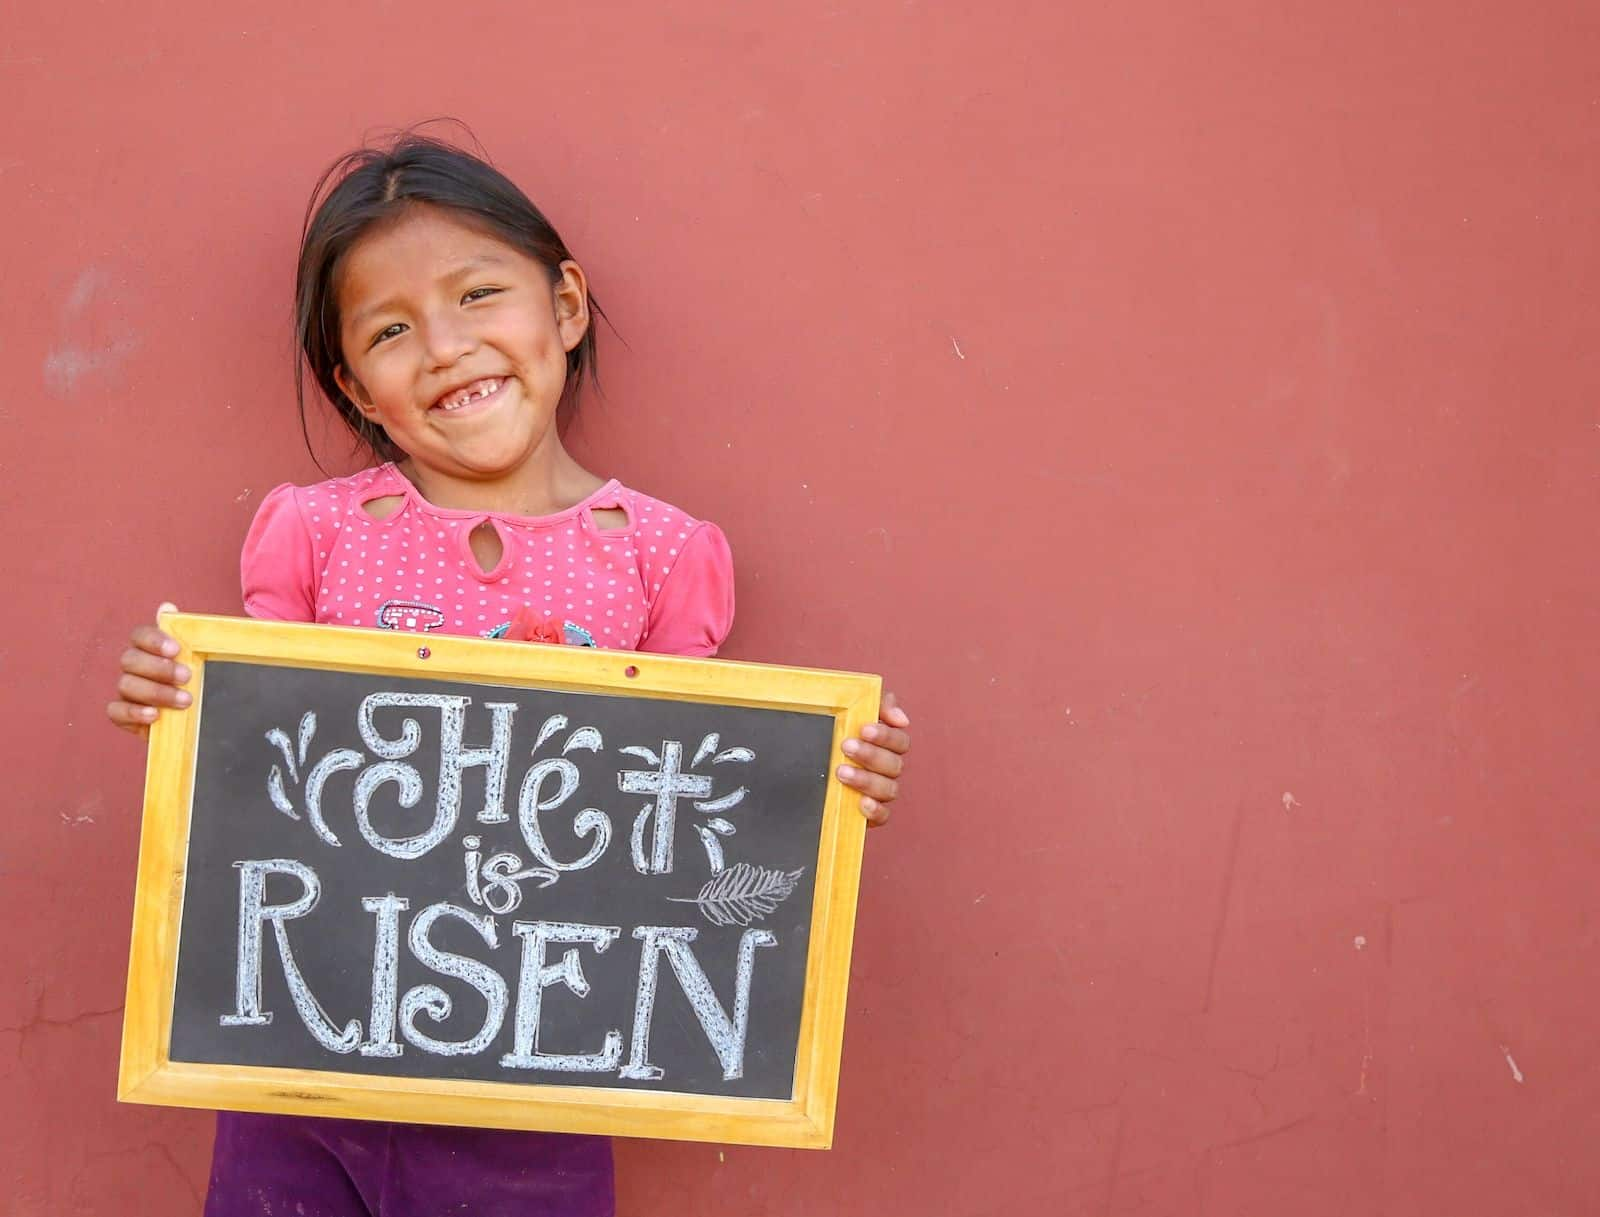 "A girl missing her front tooth smiles, holding a chalkboard that says, ""He is risen."" She is wearing a pink shirt and purple pants and stands in front of a coral colored wall."